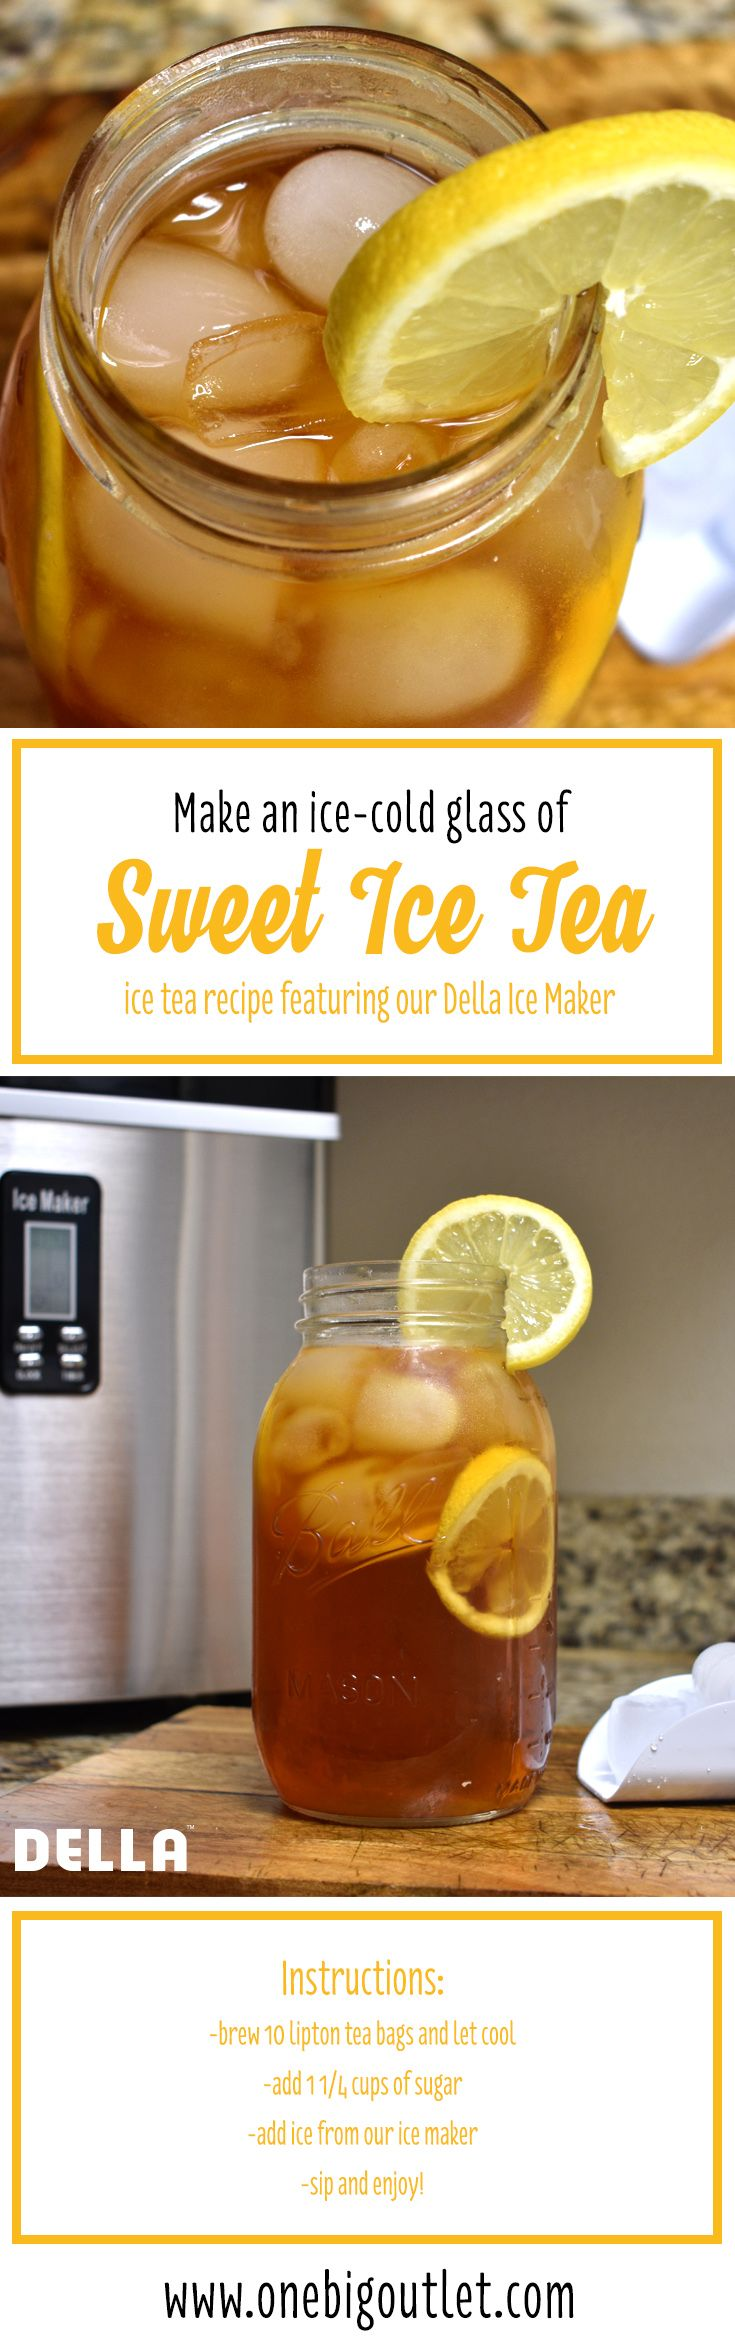 Sweet Ice Tea Recipe Using our DELLA Electric Ice Maker Machine Counter Top / Timer & Clock Function / 3 Cube Sizes - 35lb/24hr!